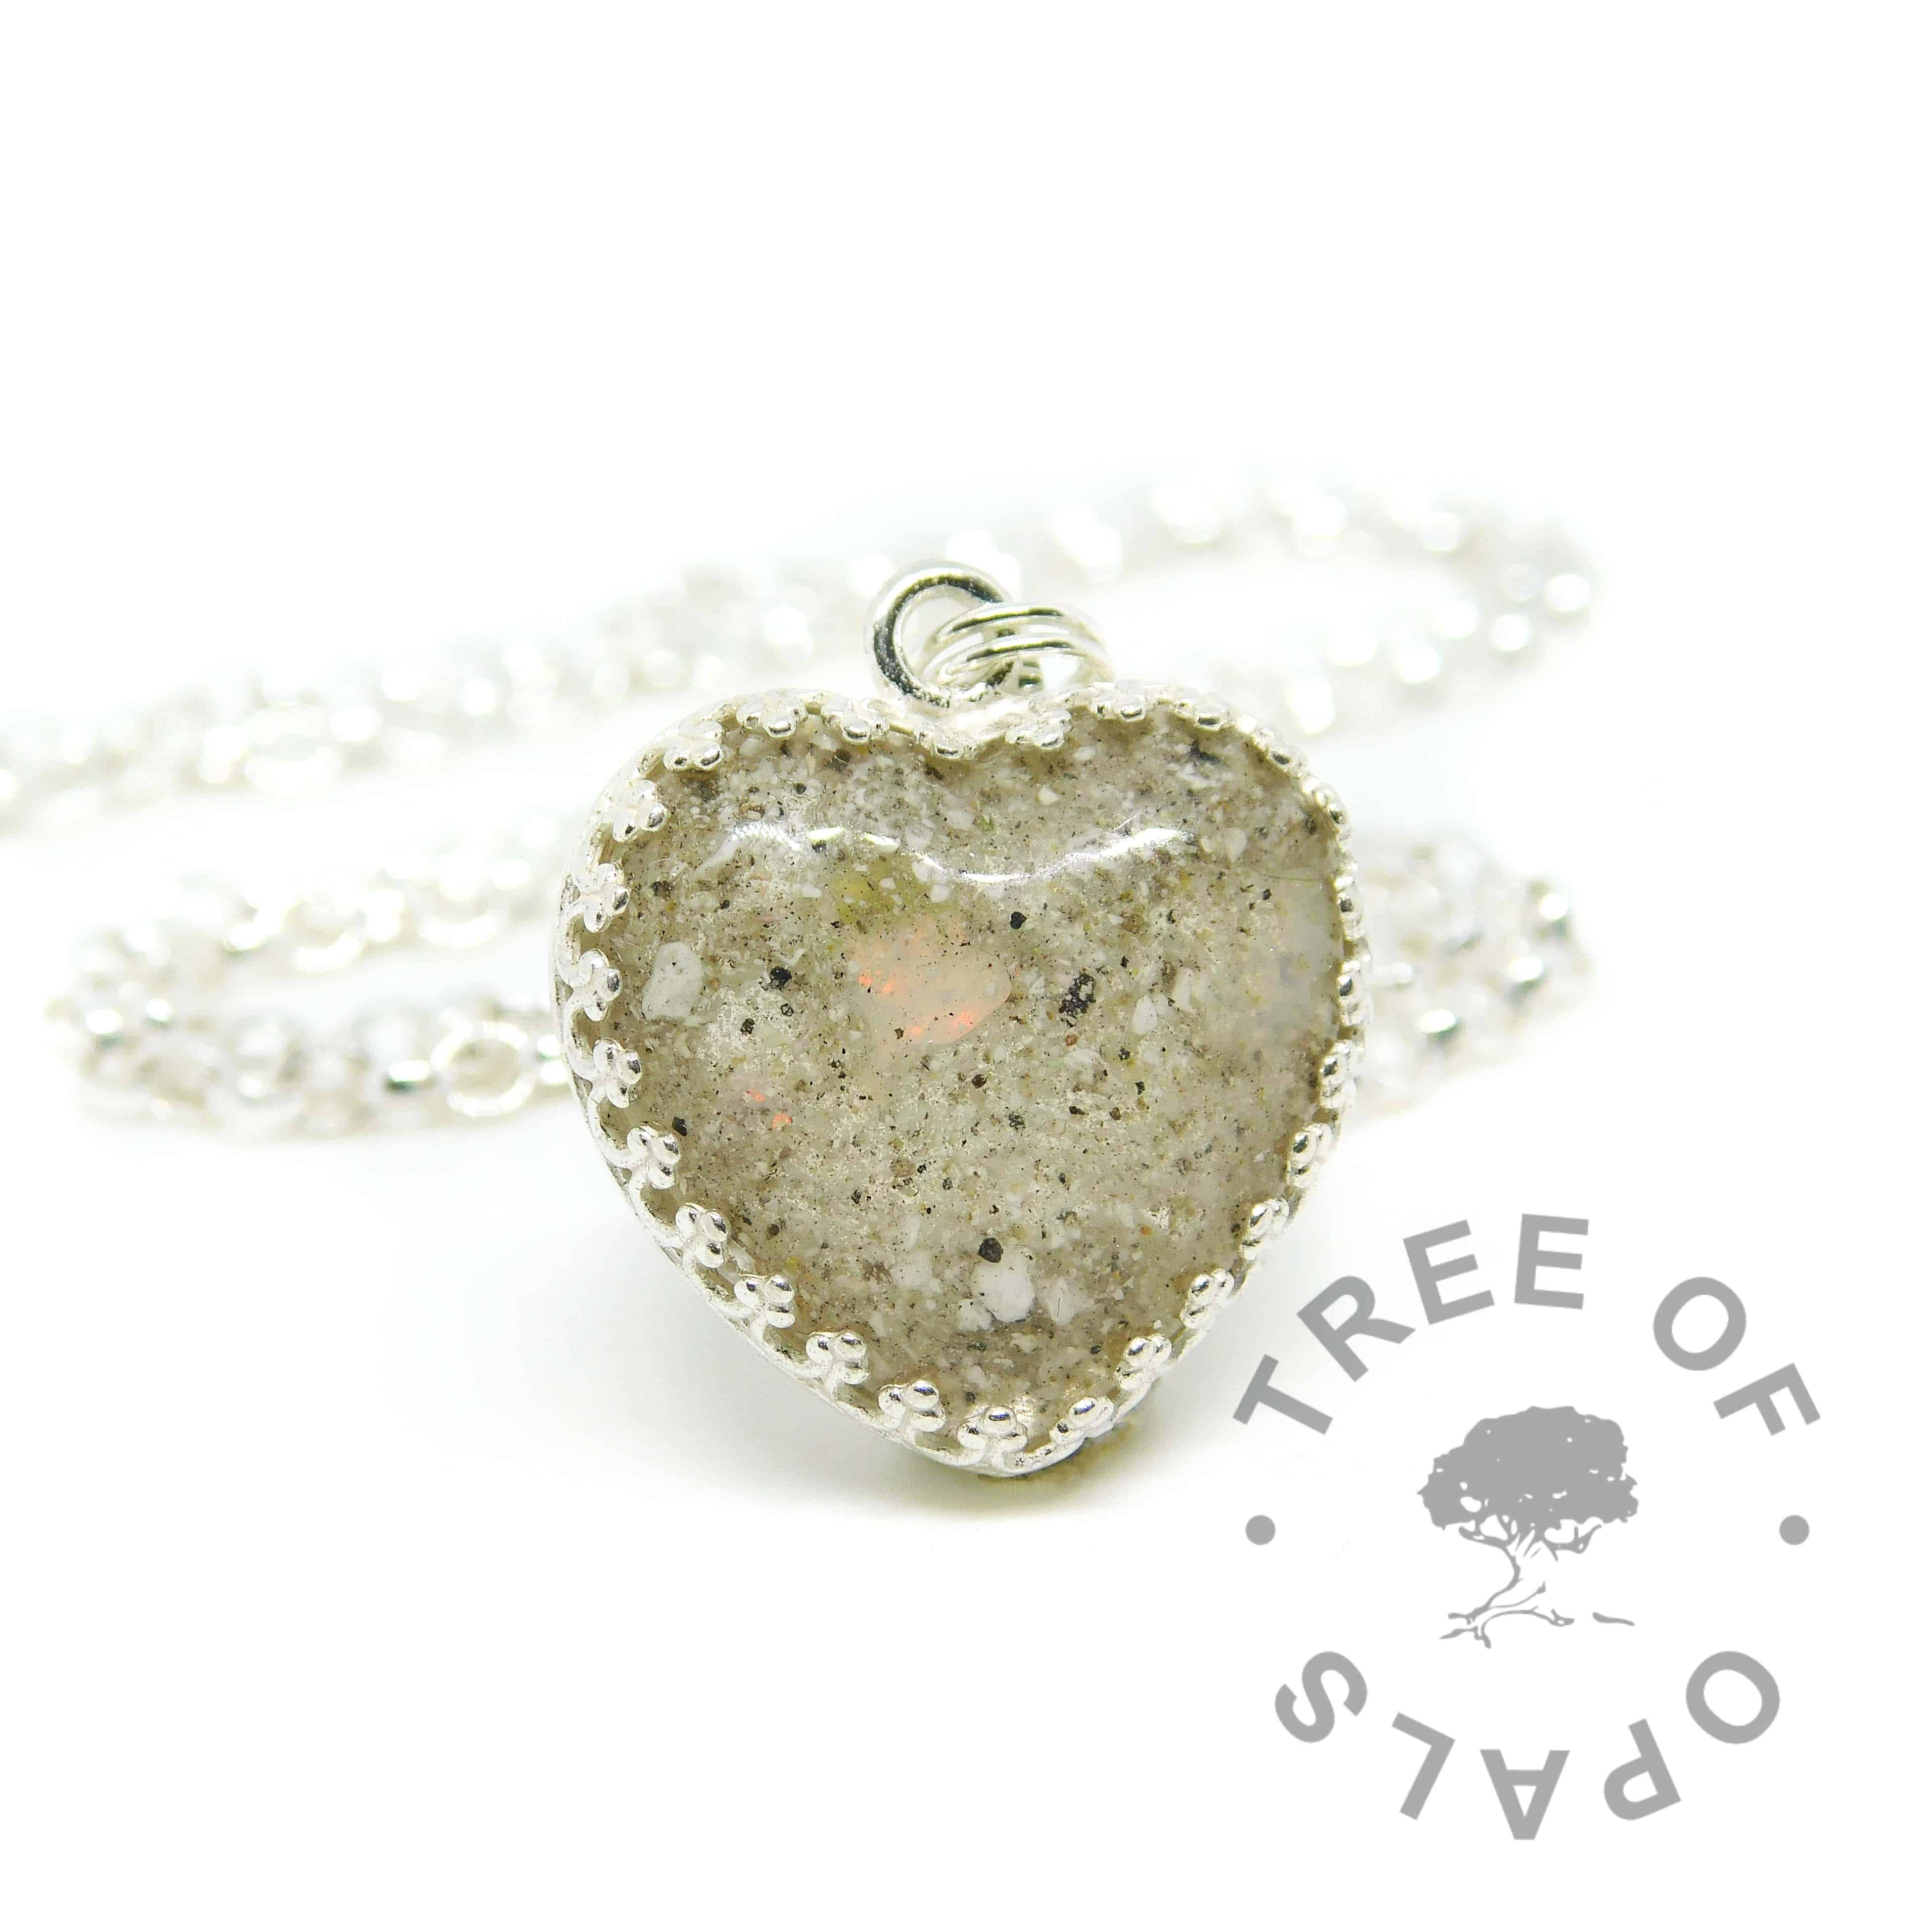 Cremation ashes with crystal clear resin, set in an 18mm heart cabochon and genuine October birthstone opal slices, in a solid sterling silver crown setting. Shown on a medium classic chain upgrade. Watermarked copyright image by Tree of Opals